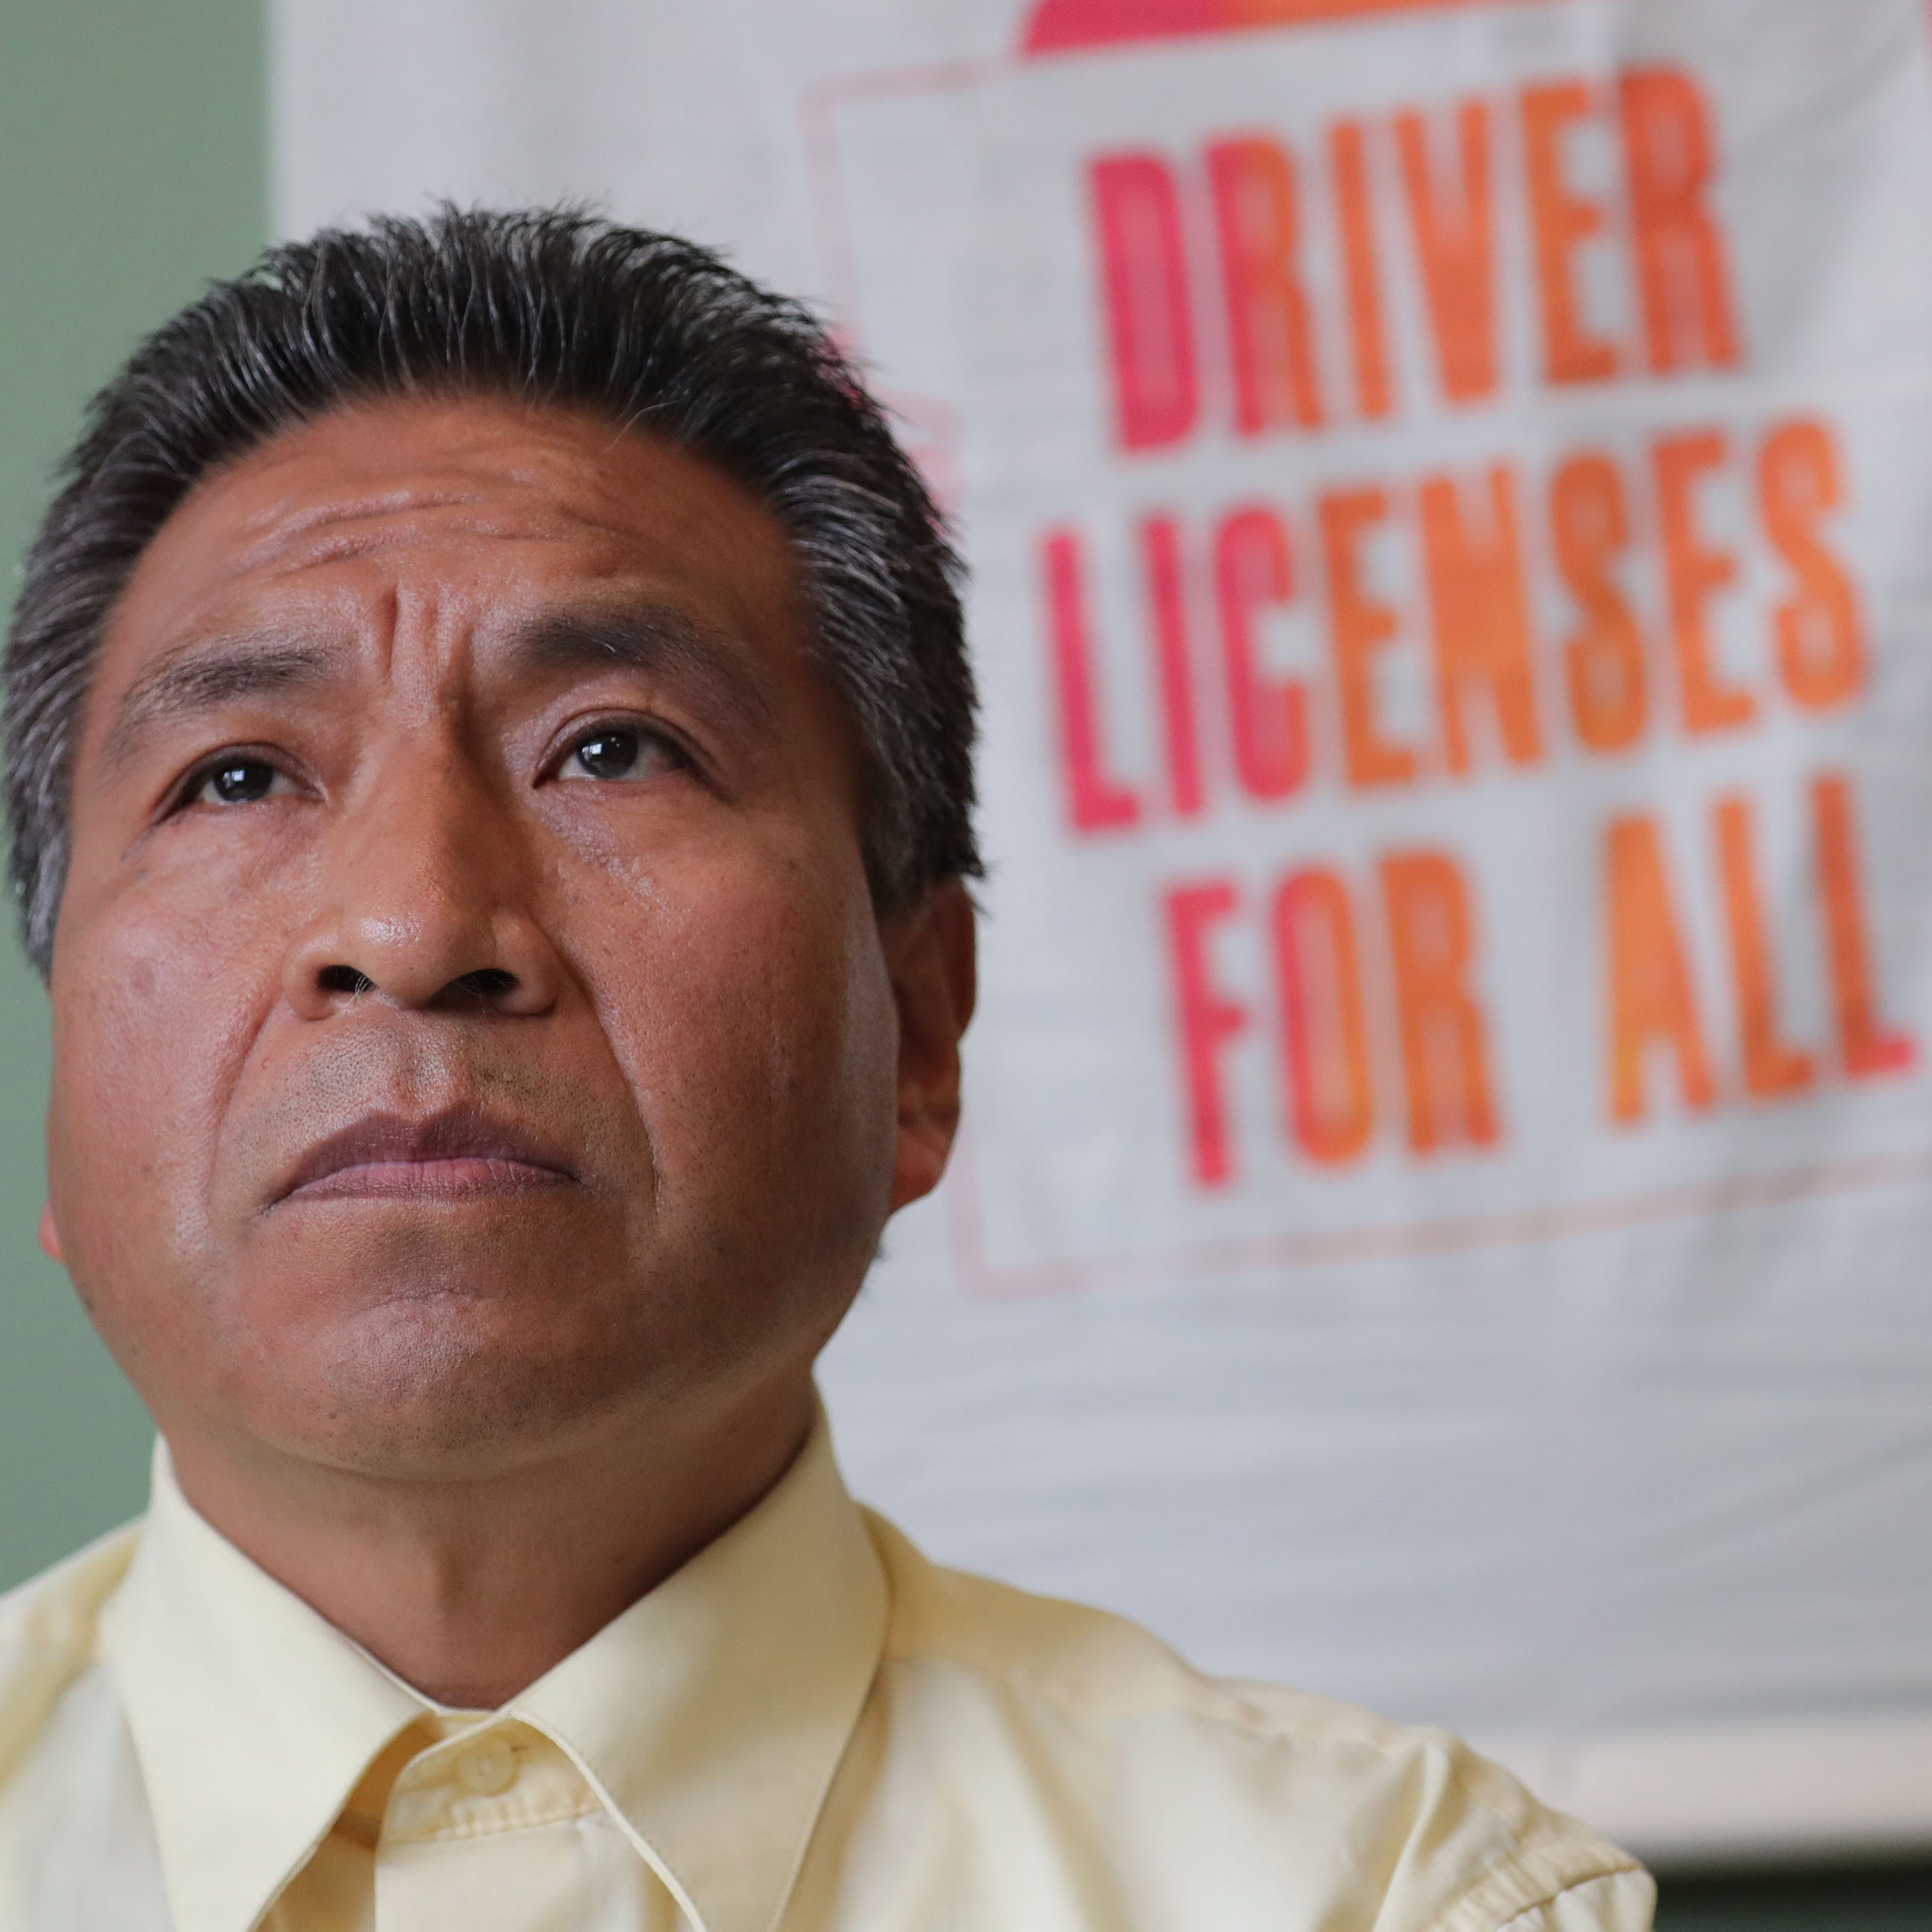 A Wisconsin grandfather picked up for driving without a license fears deportation to Mexico